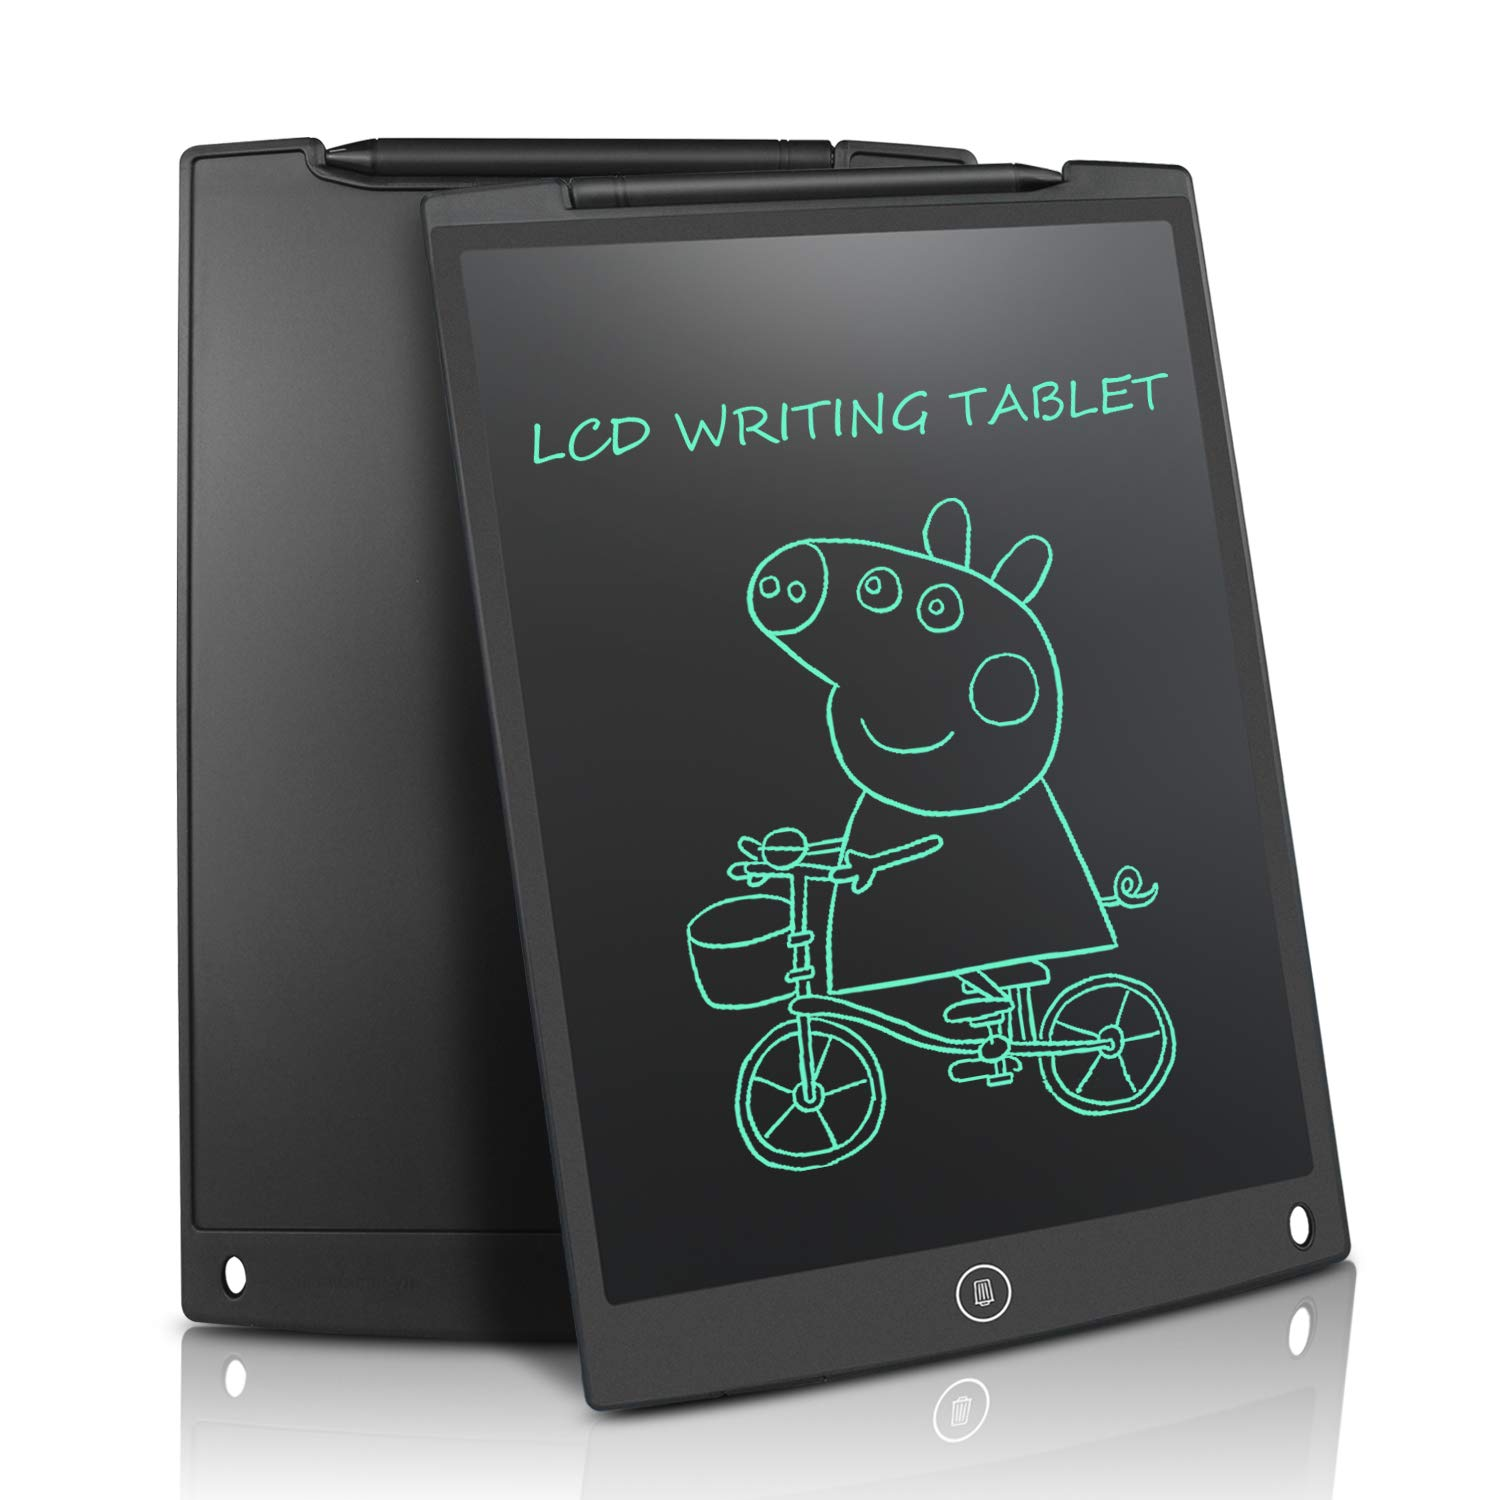 LCD Writing Tablet 8.5 Inch Electronic Drawing Board Graphic Tablets for Kids Partial Erasure Reusable Doodle Scribble Board Handwriting Notepad,Black